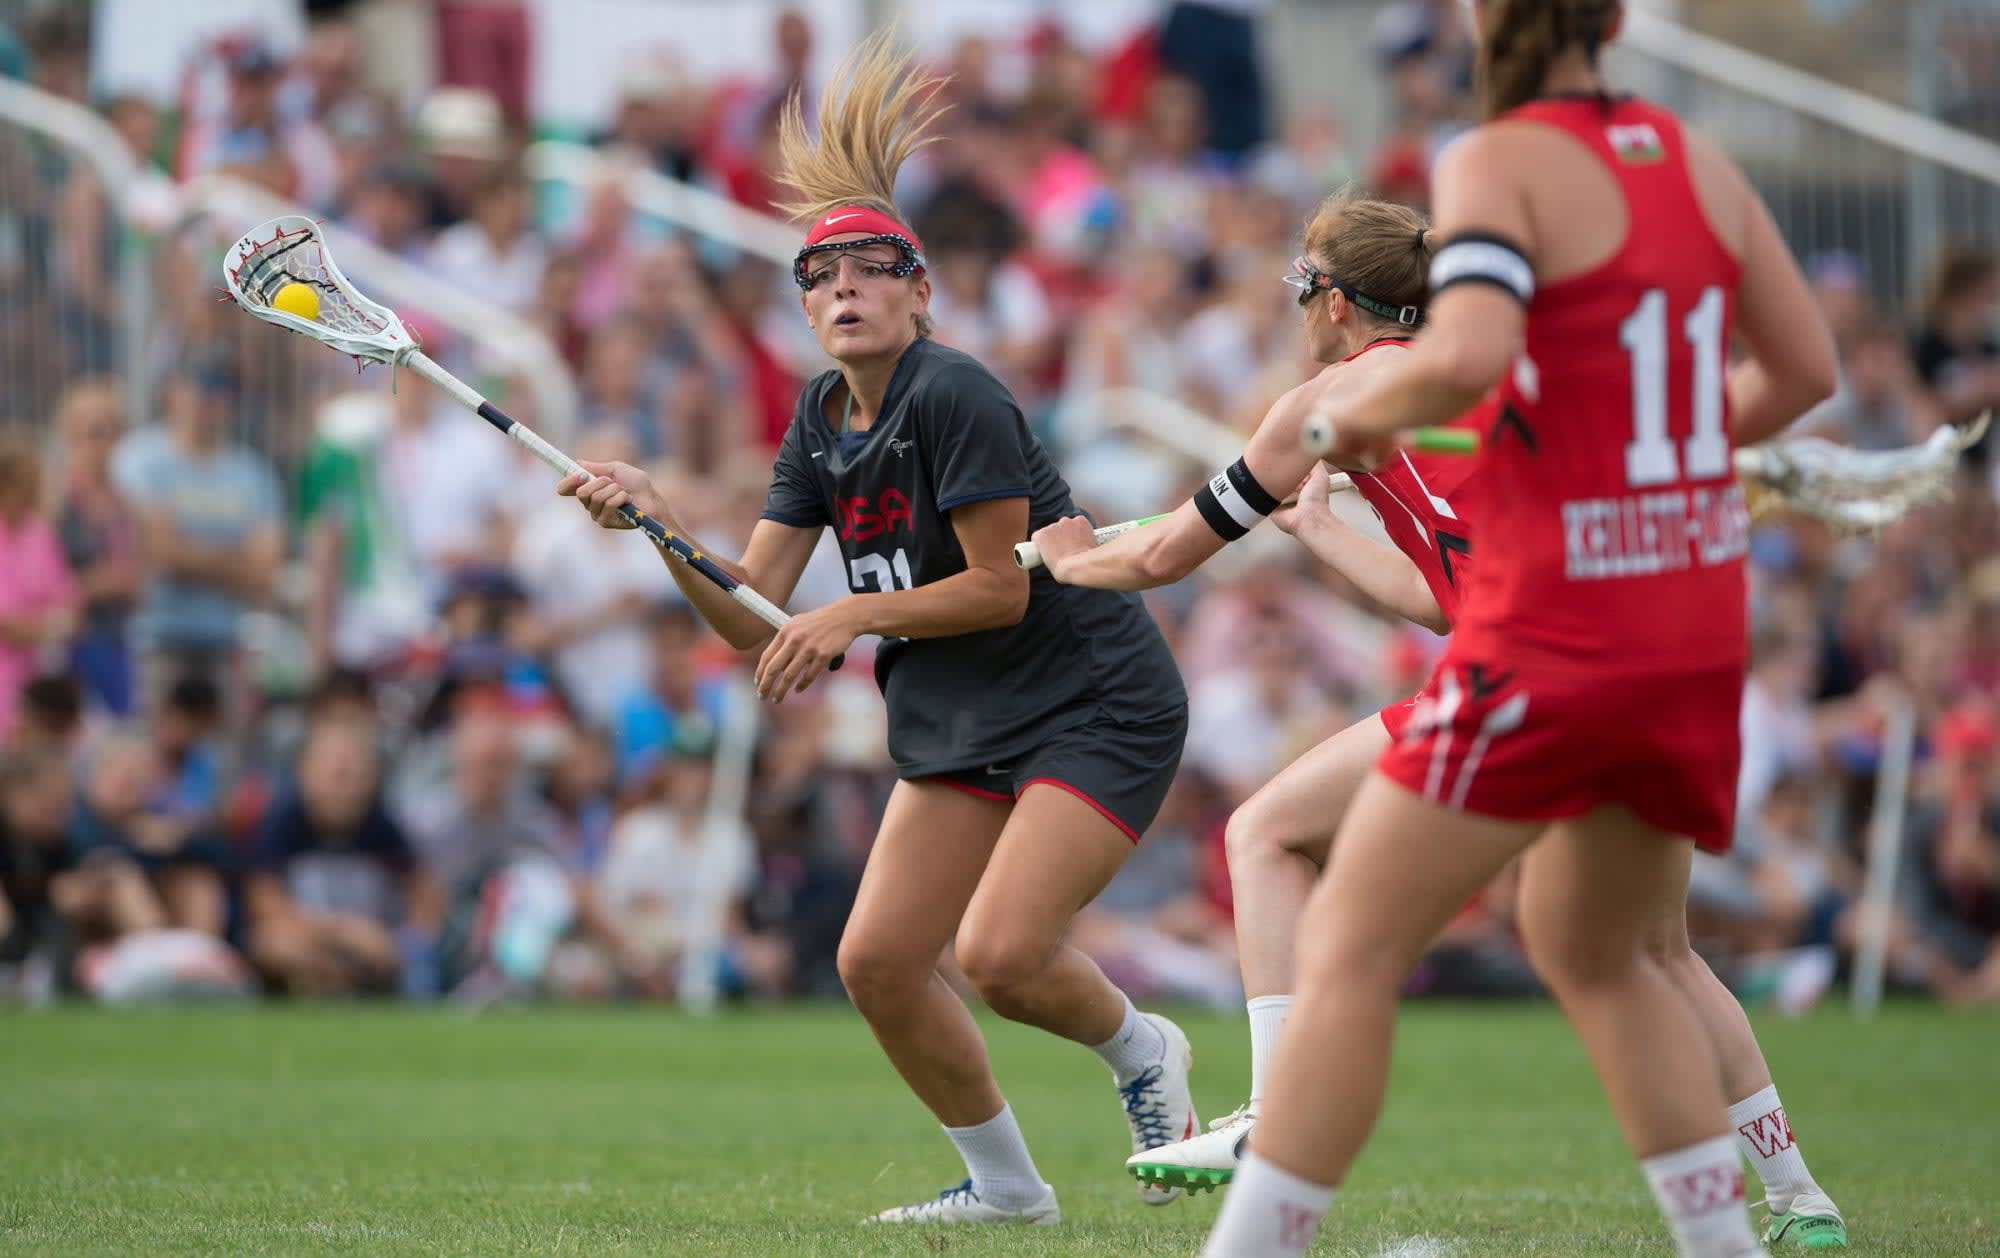 USA's taylor Cummings runs towards Welsh traffic at the 2017 FIL Rathbones Women's Lacrosse World Cup, at Surrey Sports Park, Guildford, Surrey, UK, 18th July 2017.